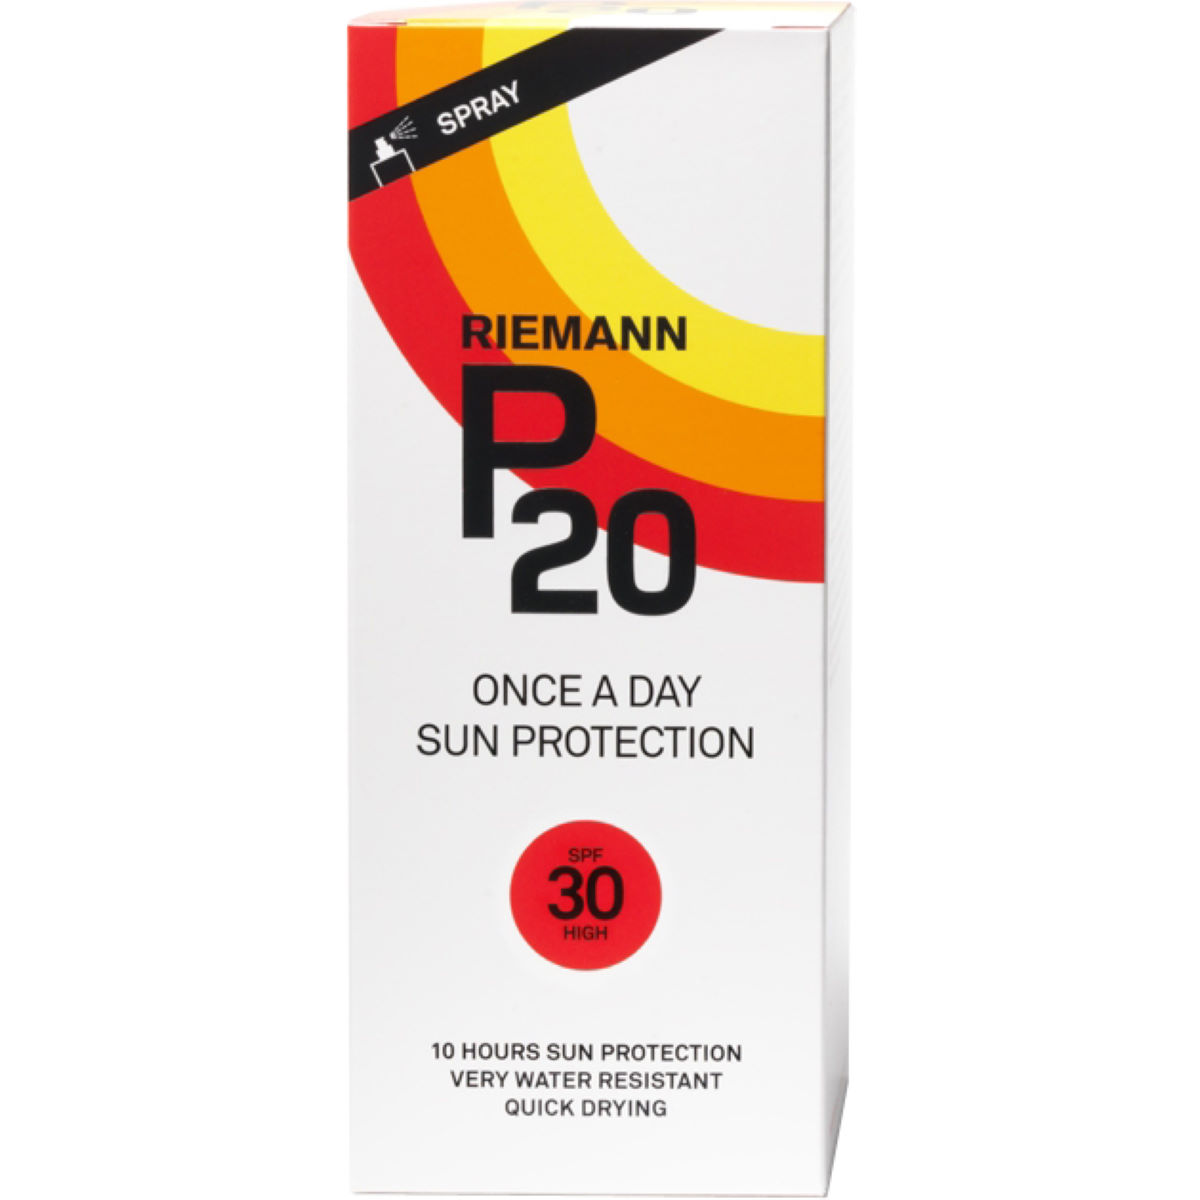 Protector solar P20 Once a Day FPS30 (200ml) - Cremas solares